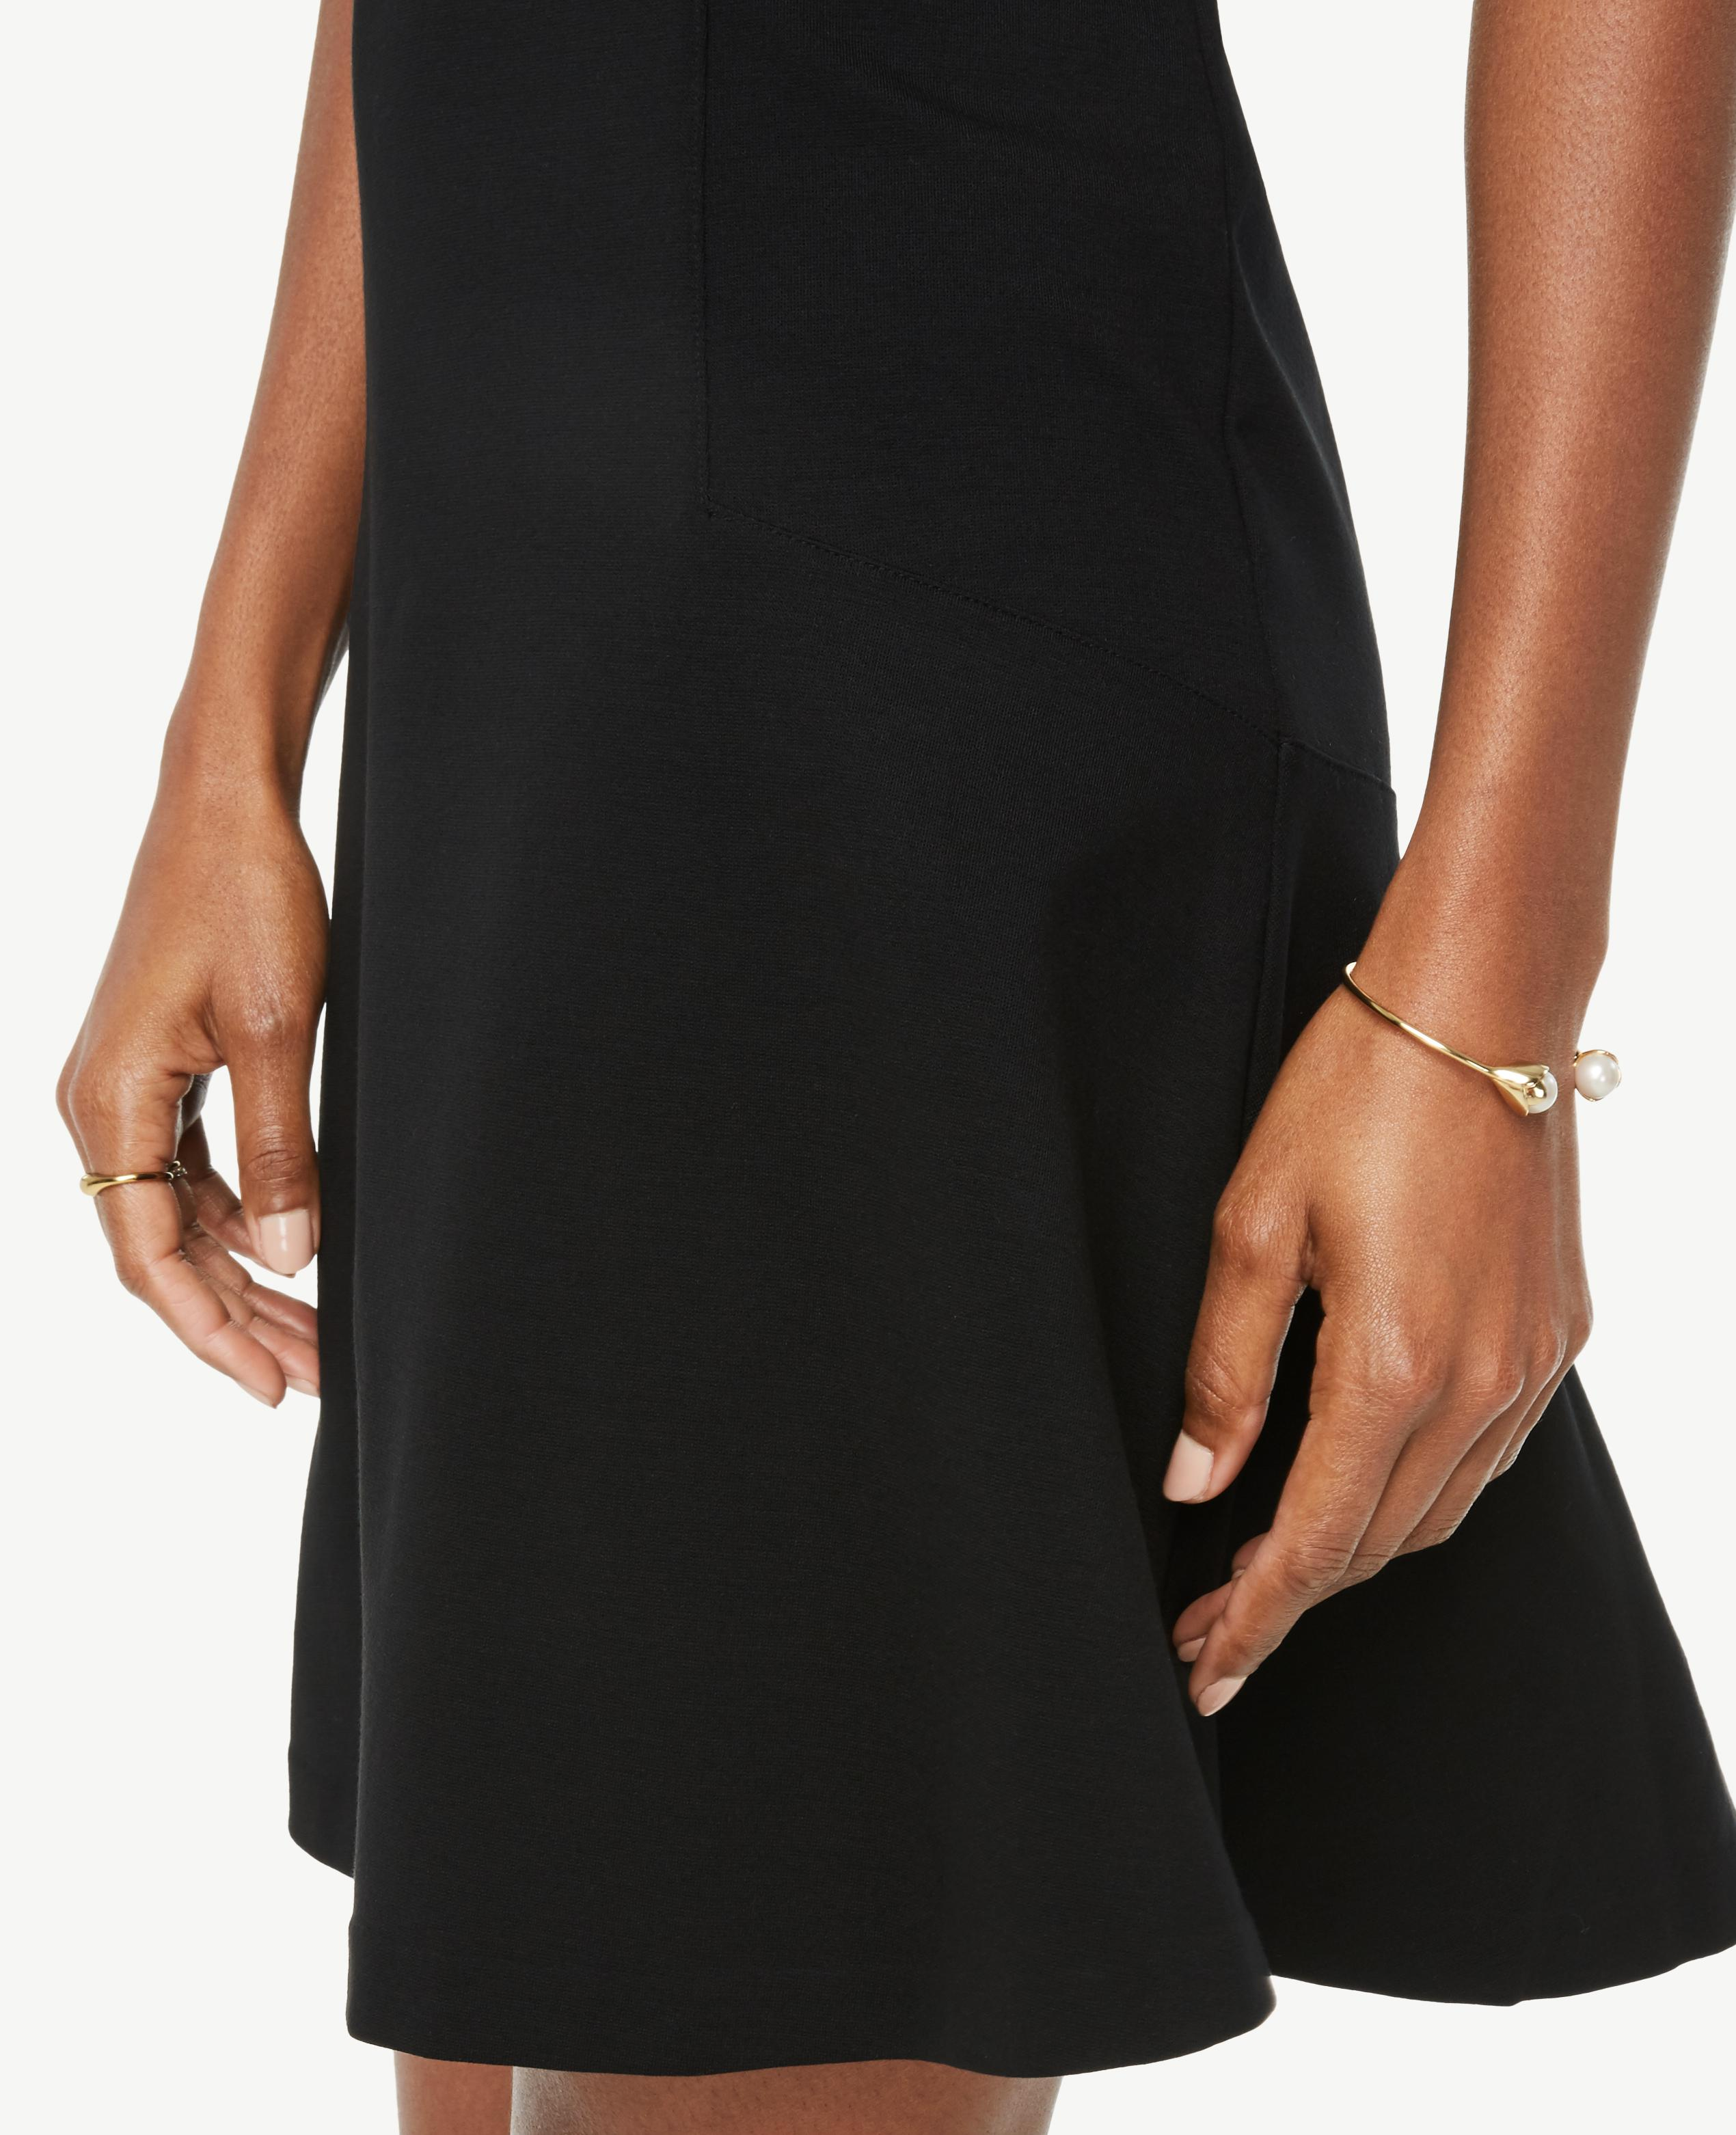 Lyst - Ann Taylor Tall Wide V-neck Ponte Flare Dress in Black 37480477a